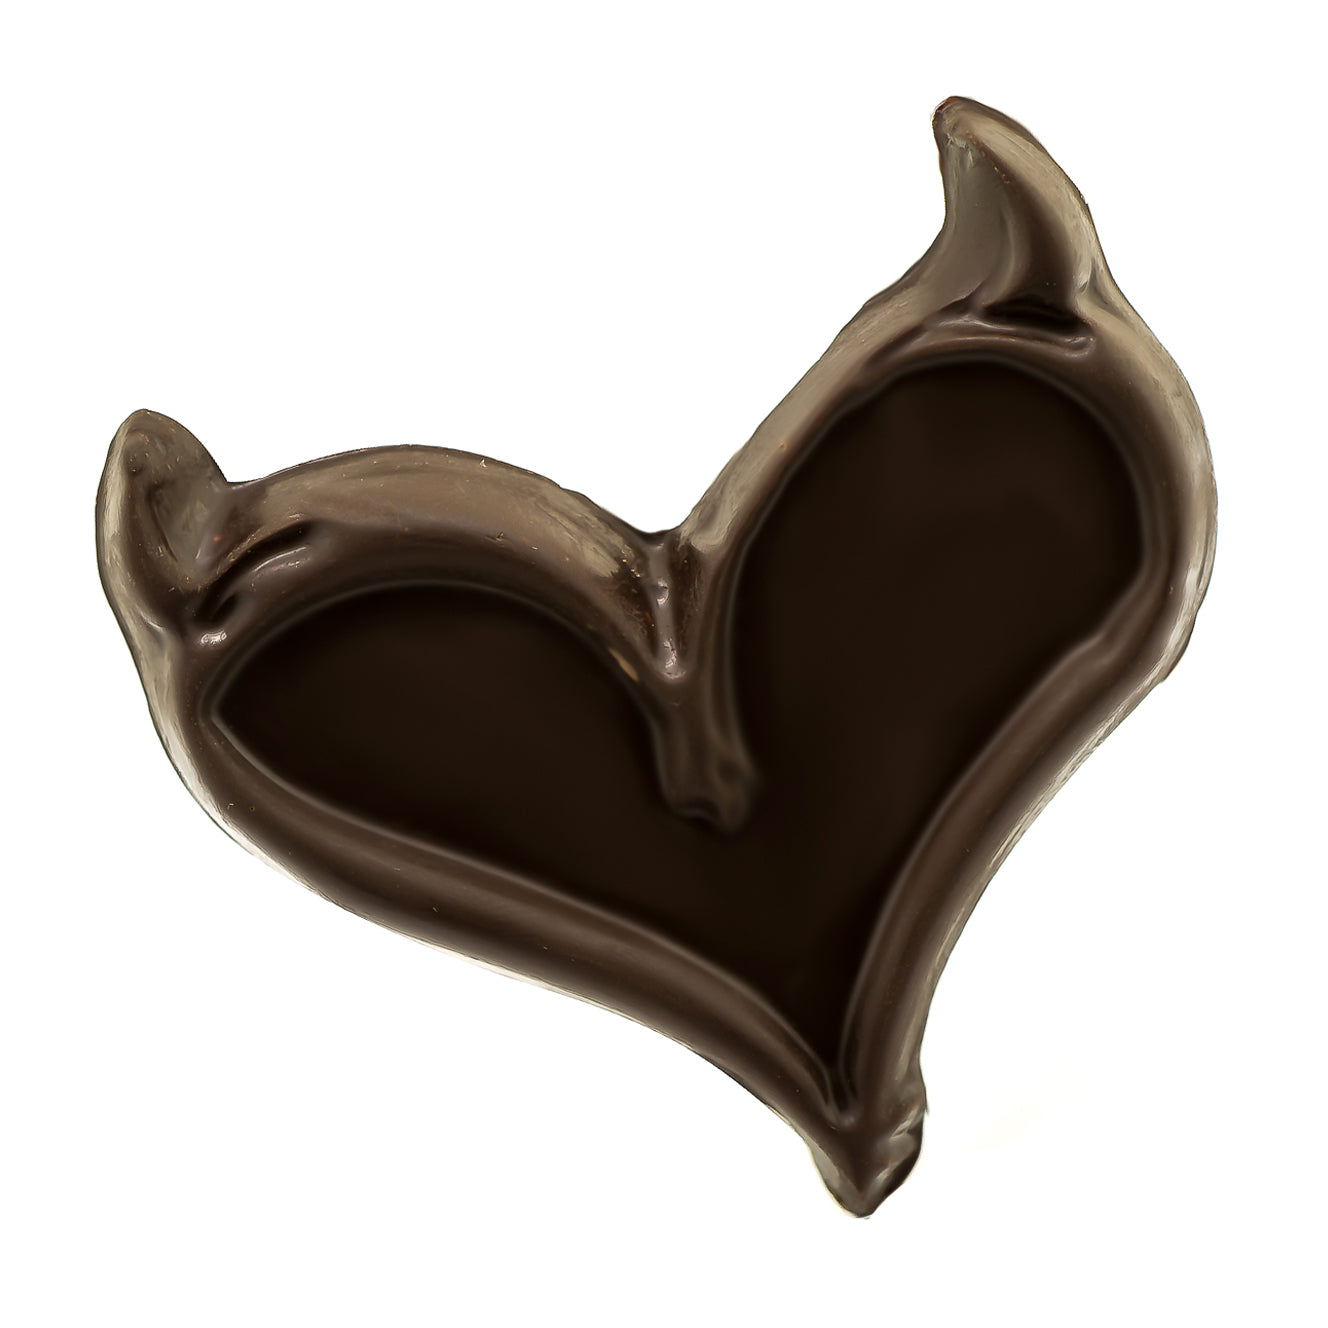 Sinful Treats (6-12 pieces) Plant-Based Dark Chocolate with